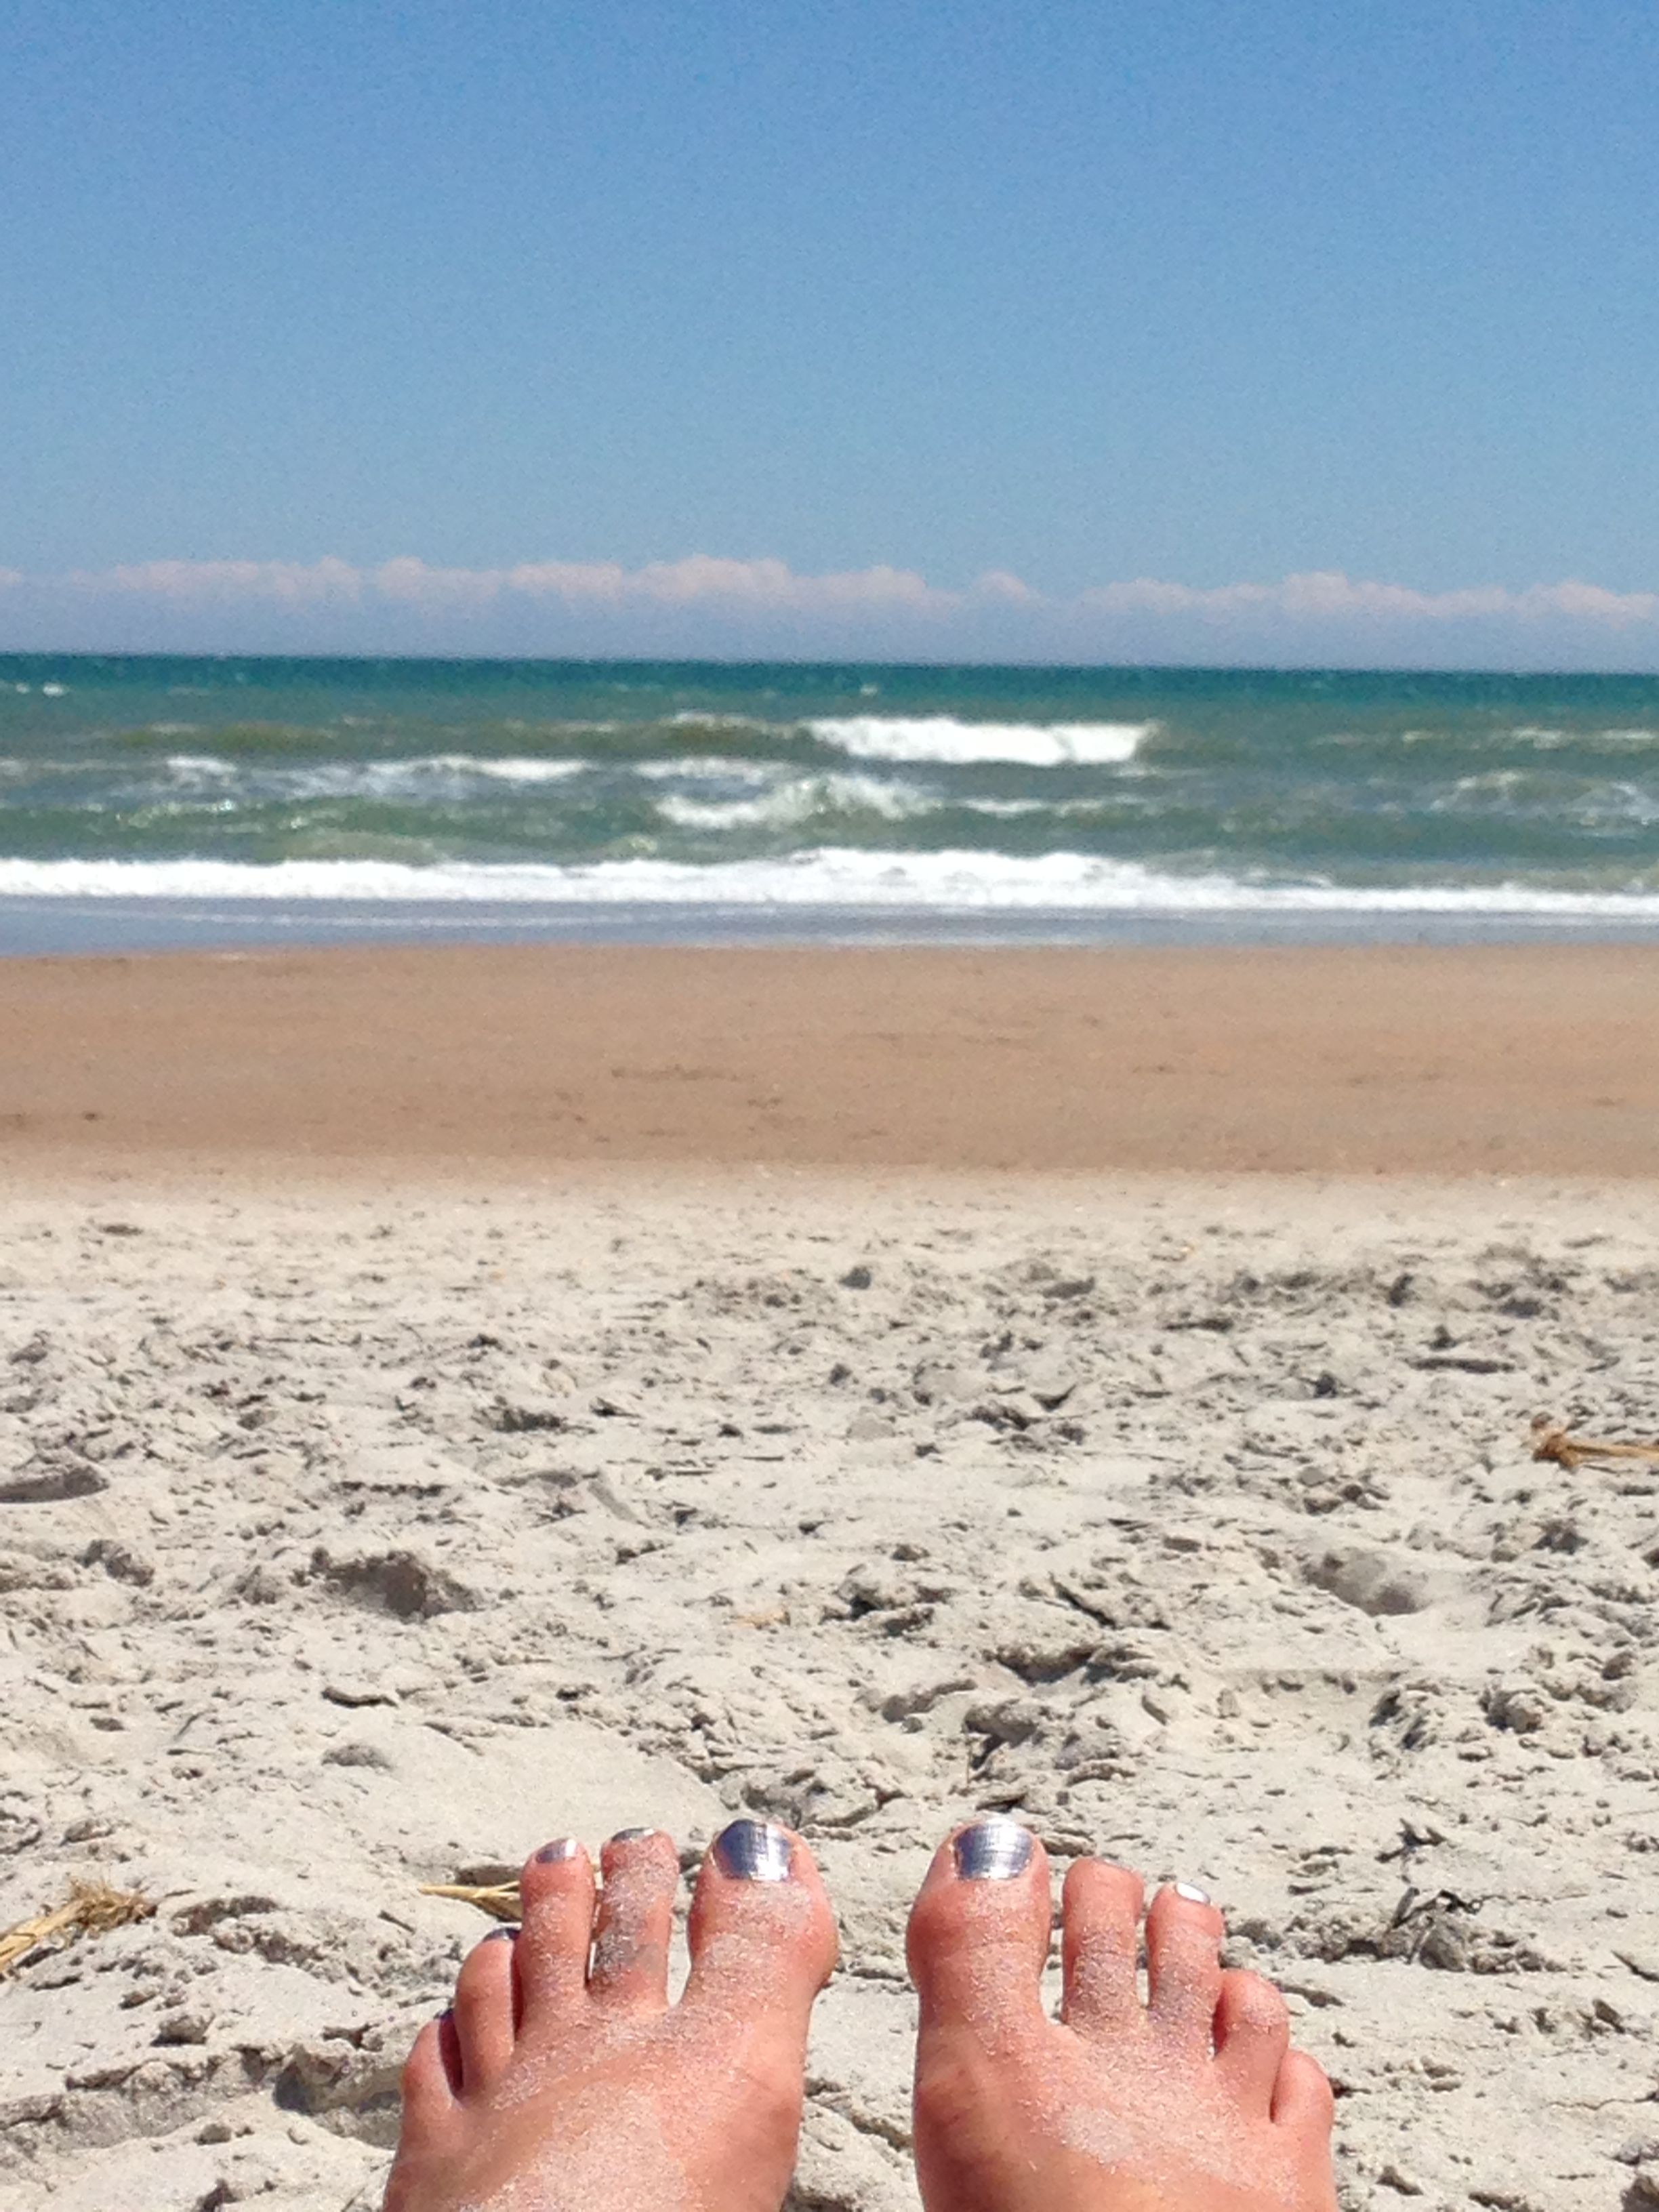 Toes in the Sand. #SurfCity #NC